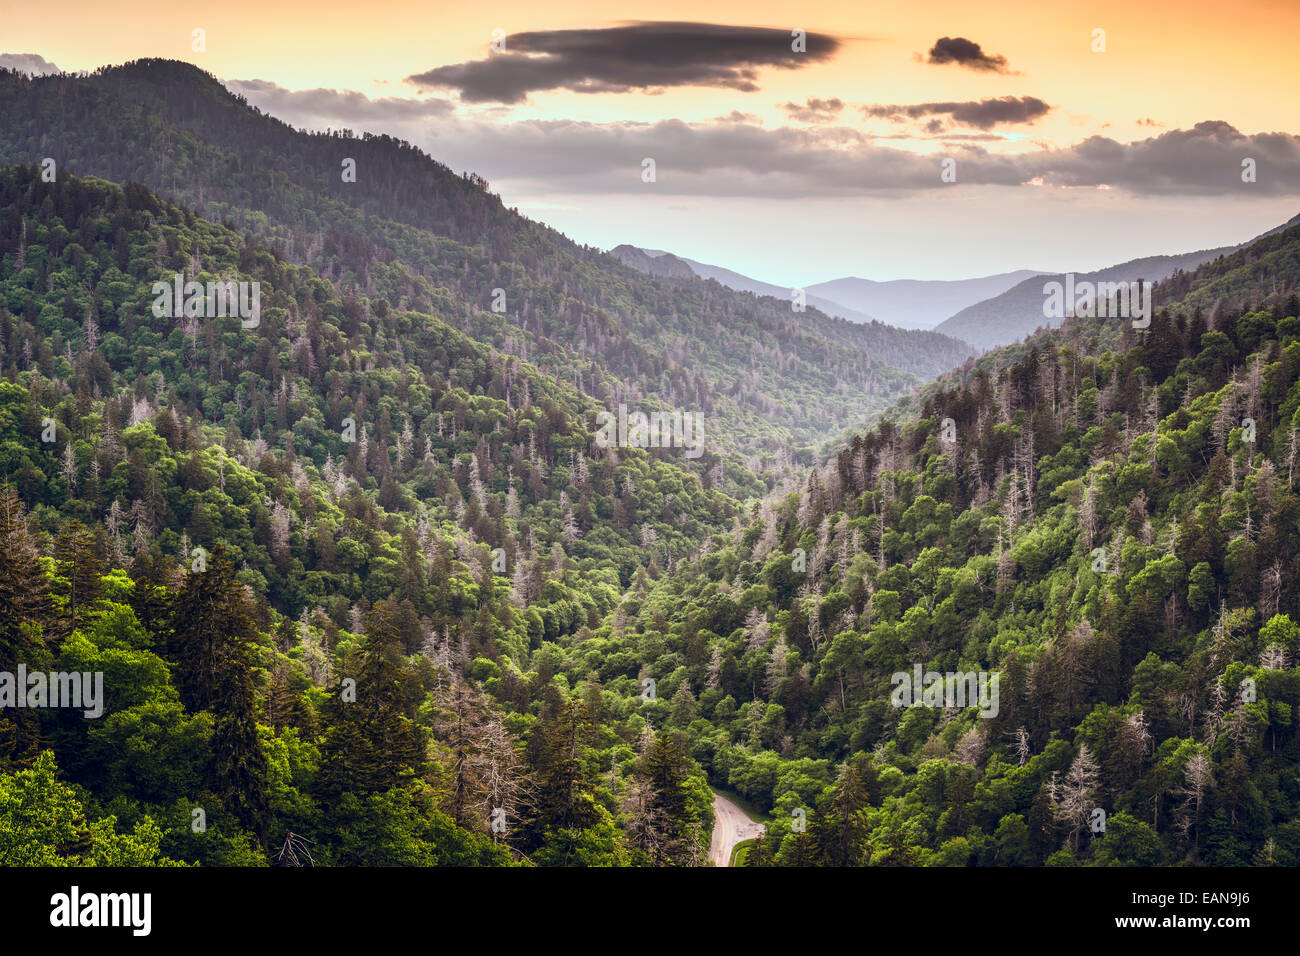 Smoky Mountains, Tennessee, USA mountainscape at newfound gap. - Stock Image